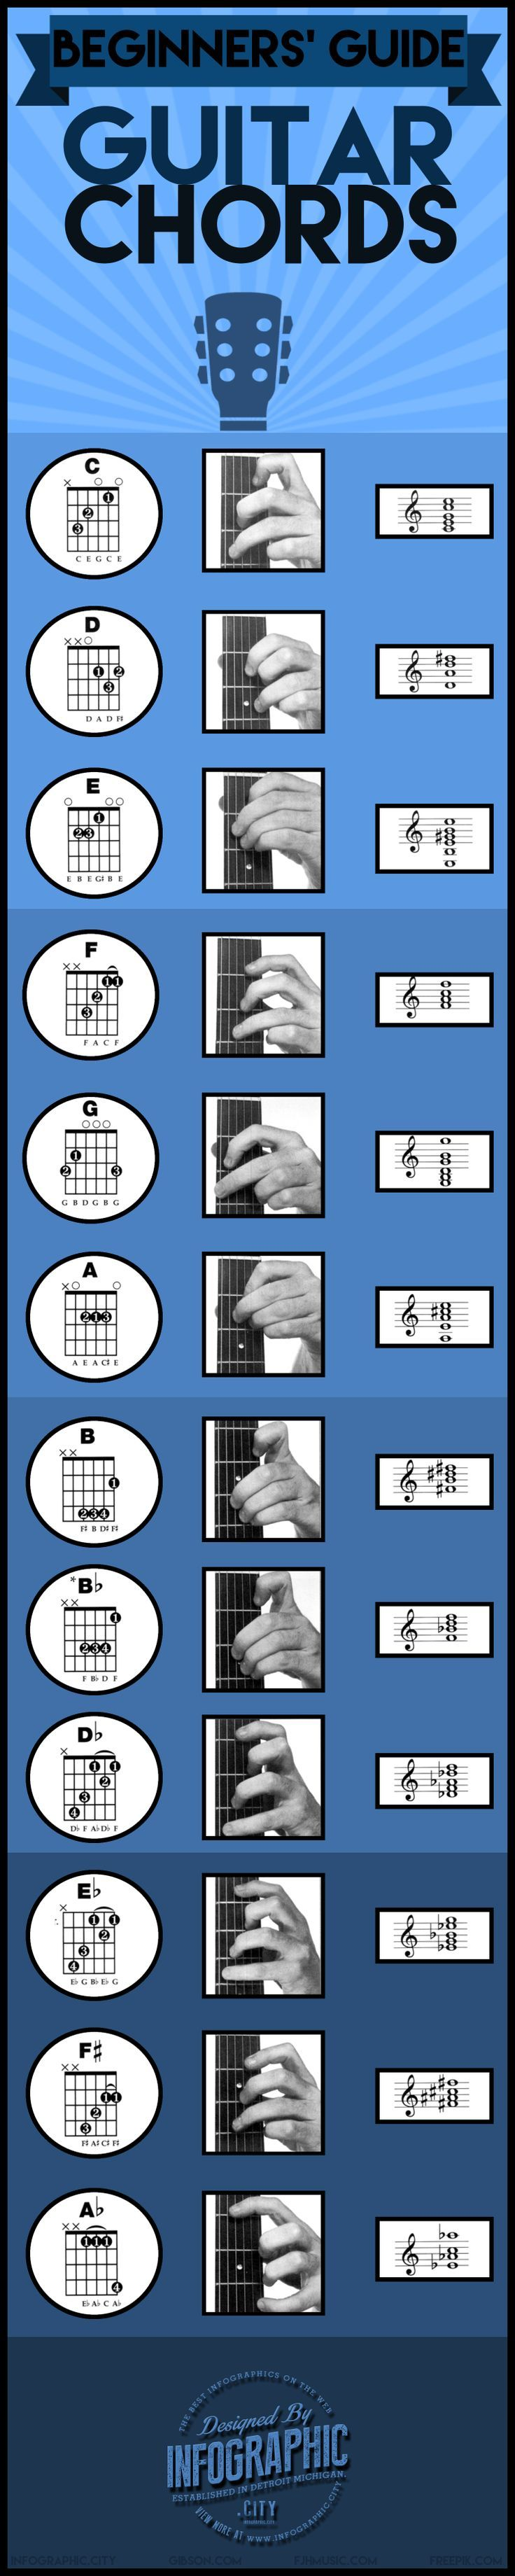 A Beginners Guide To Guitar Chords Infographic | Guitar ...